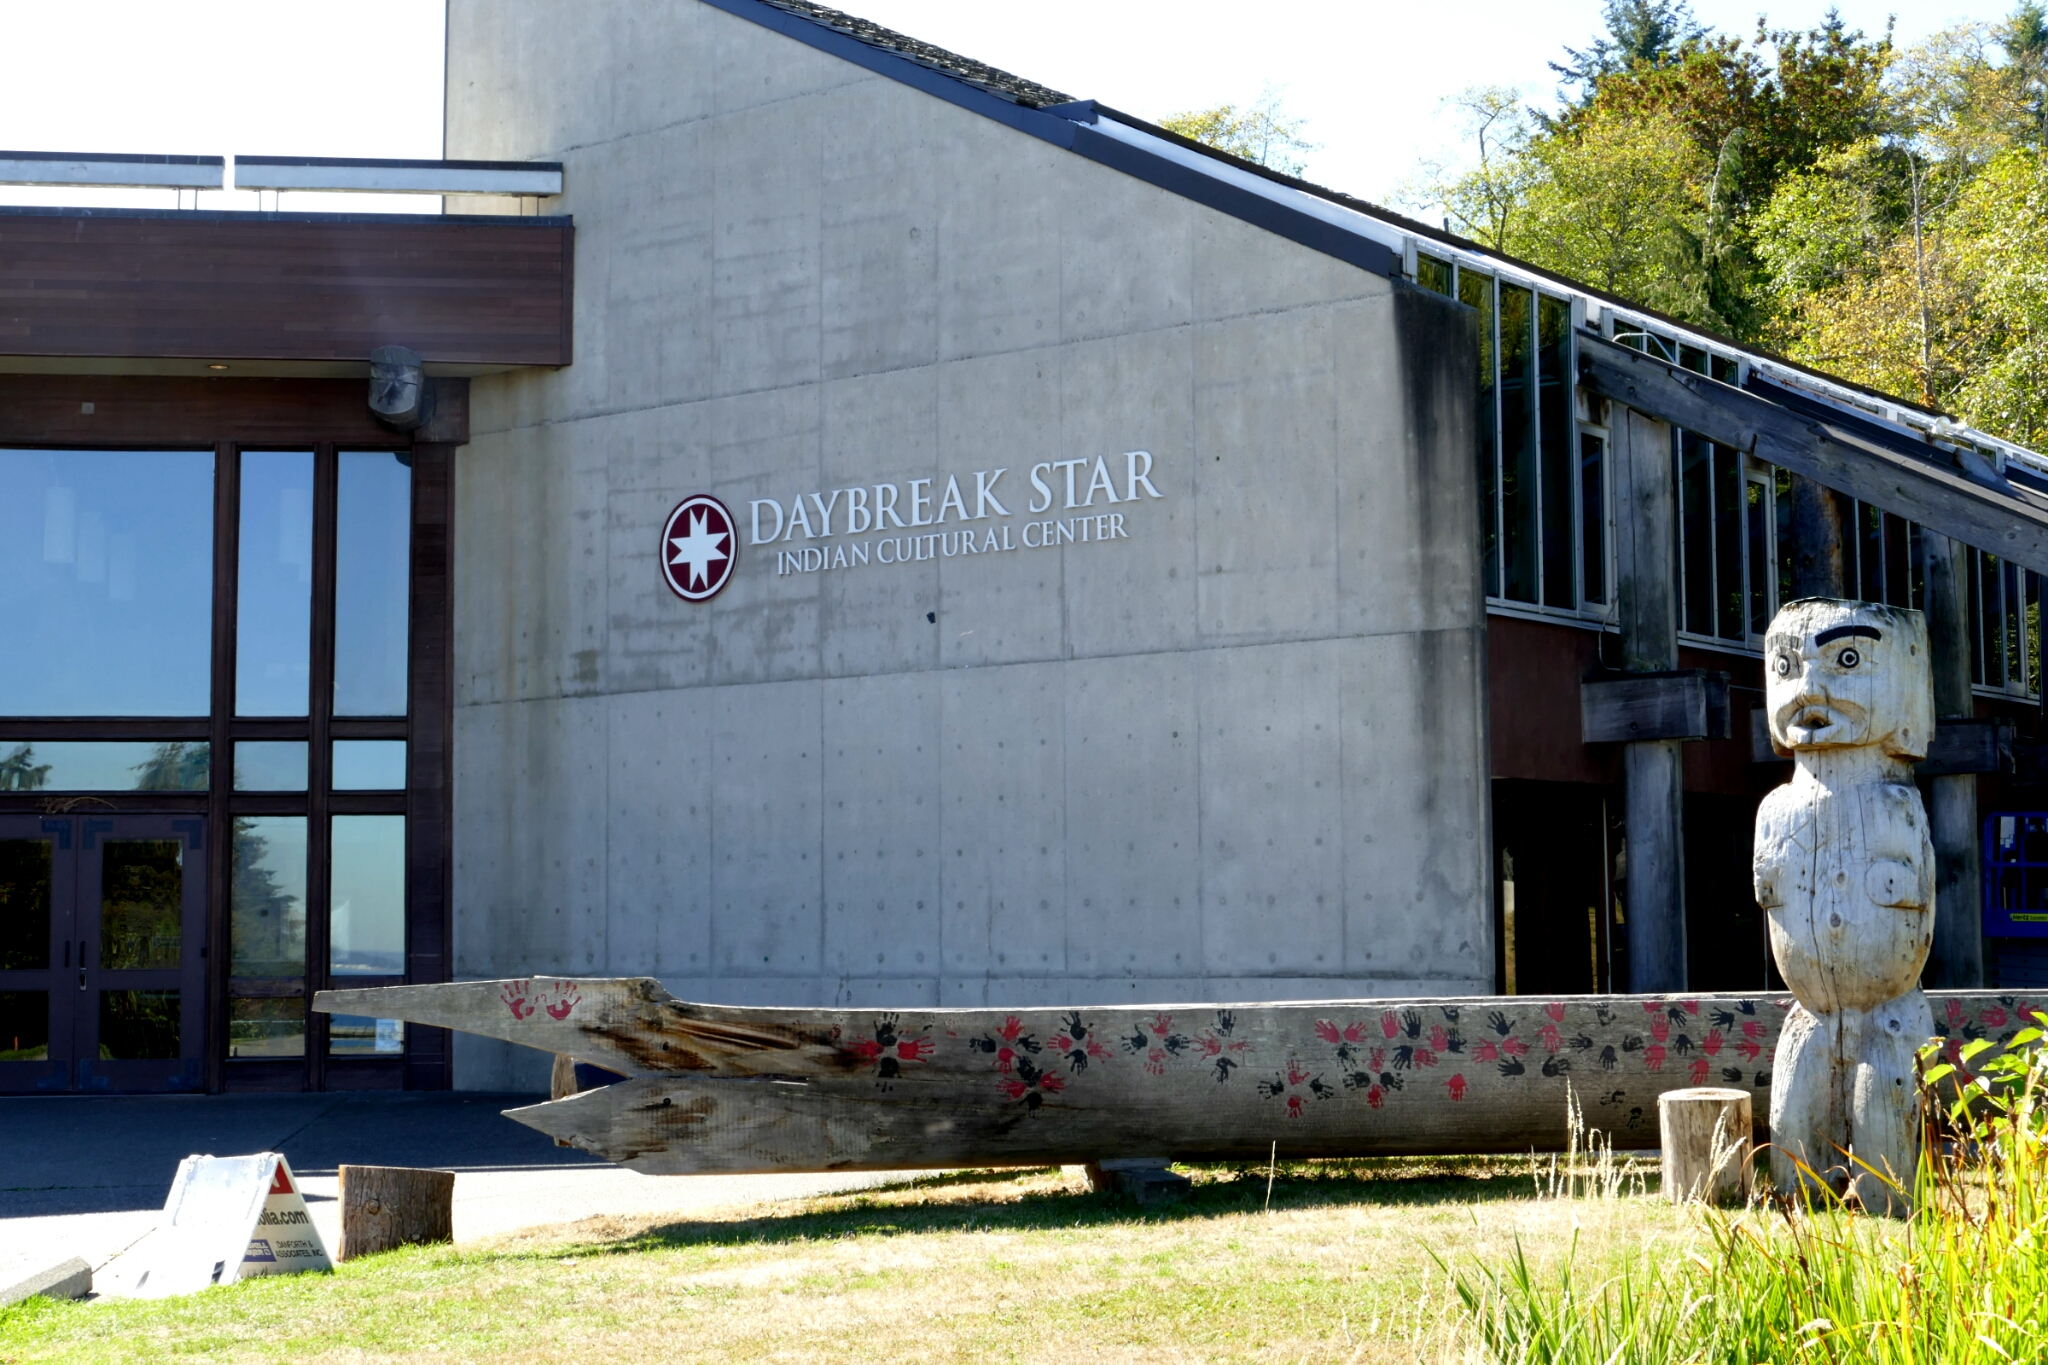 Daybreak Star Indian Cultural Center